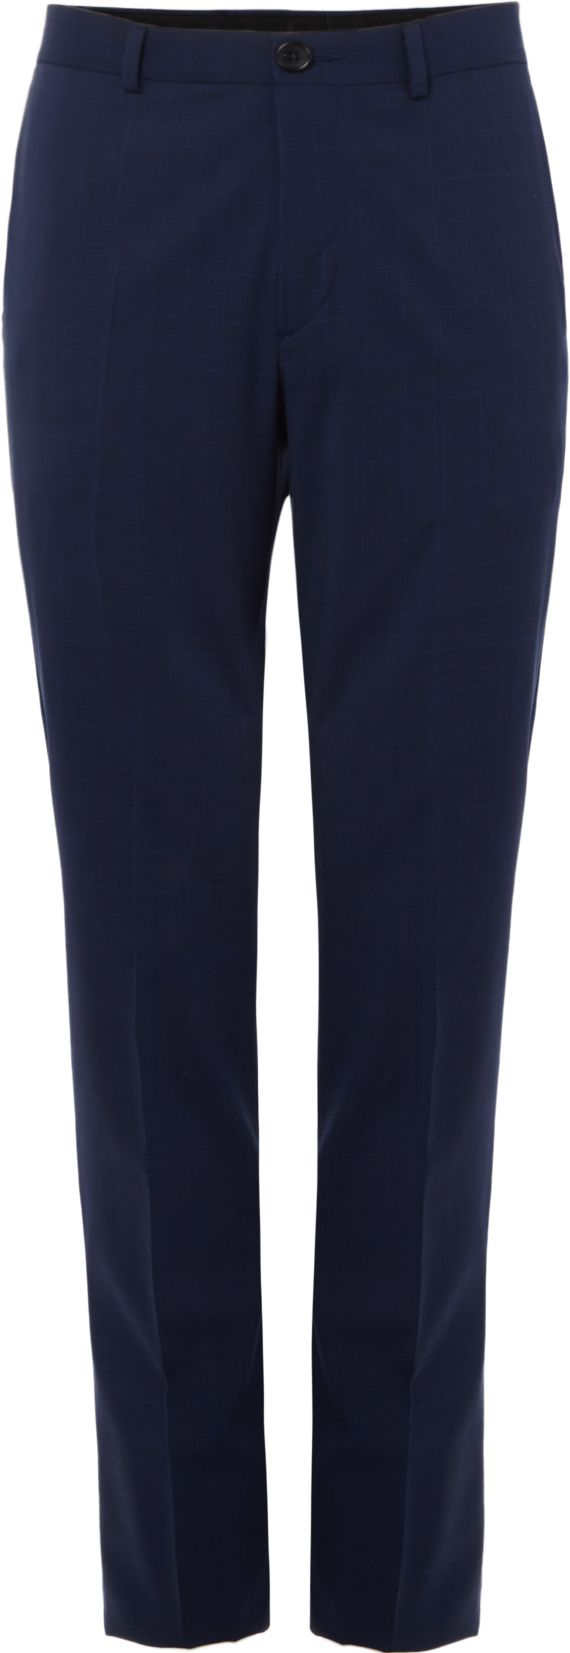 Men's PS By Paul Smith Mohair Wool Suit Trousers, Blue